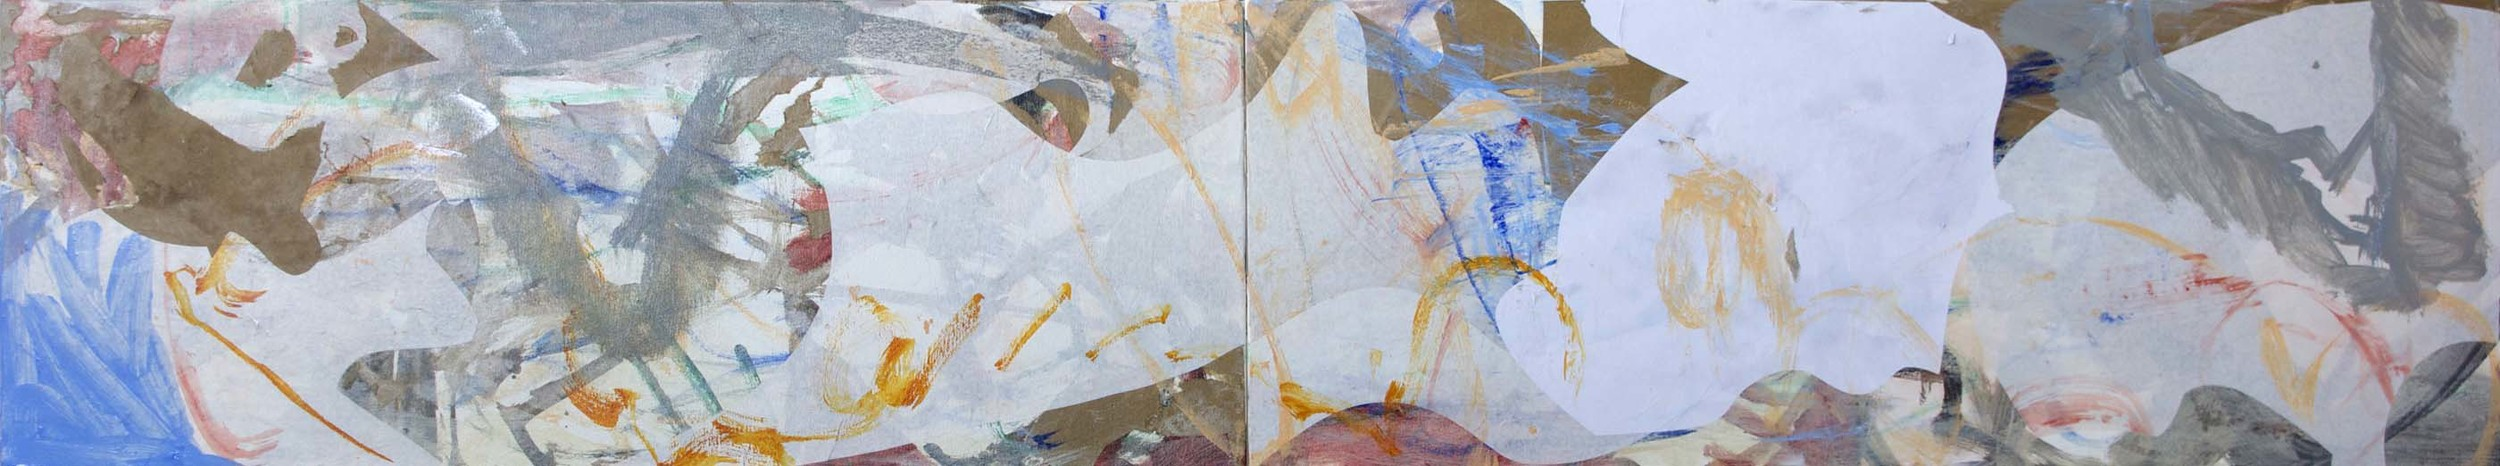 """9/3/13 STAGE 3  wei creek  18x96"""" (2 canvases)  acrylic & collaged paper on canvas"""